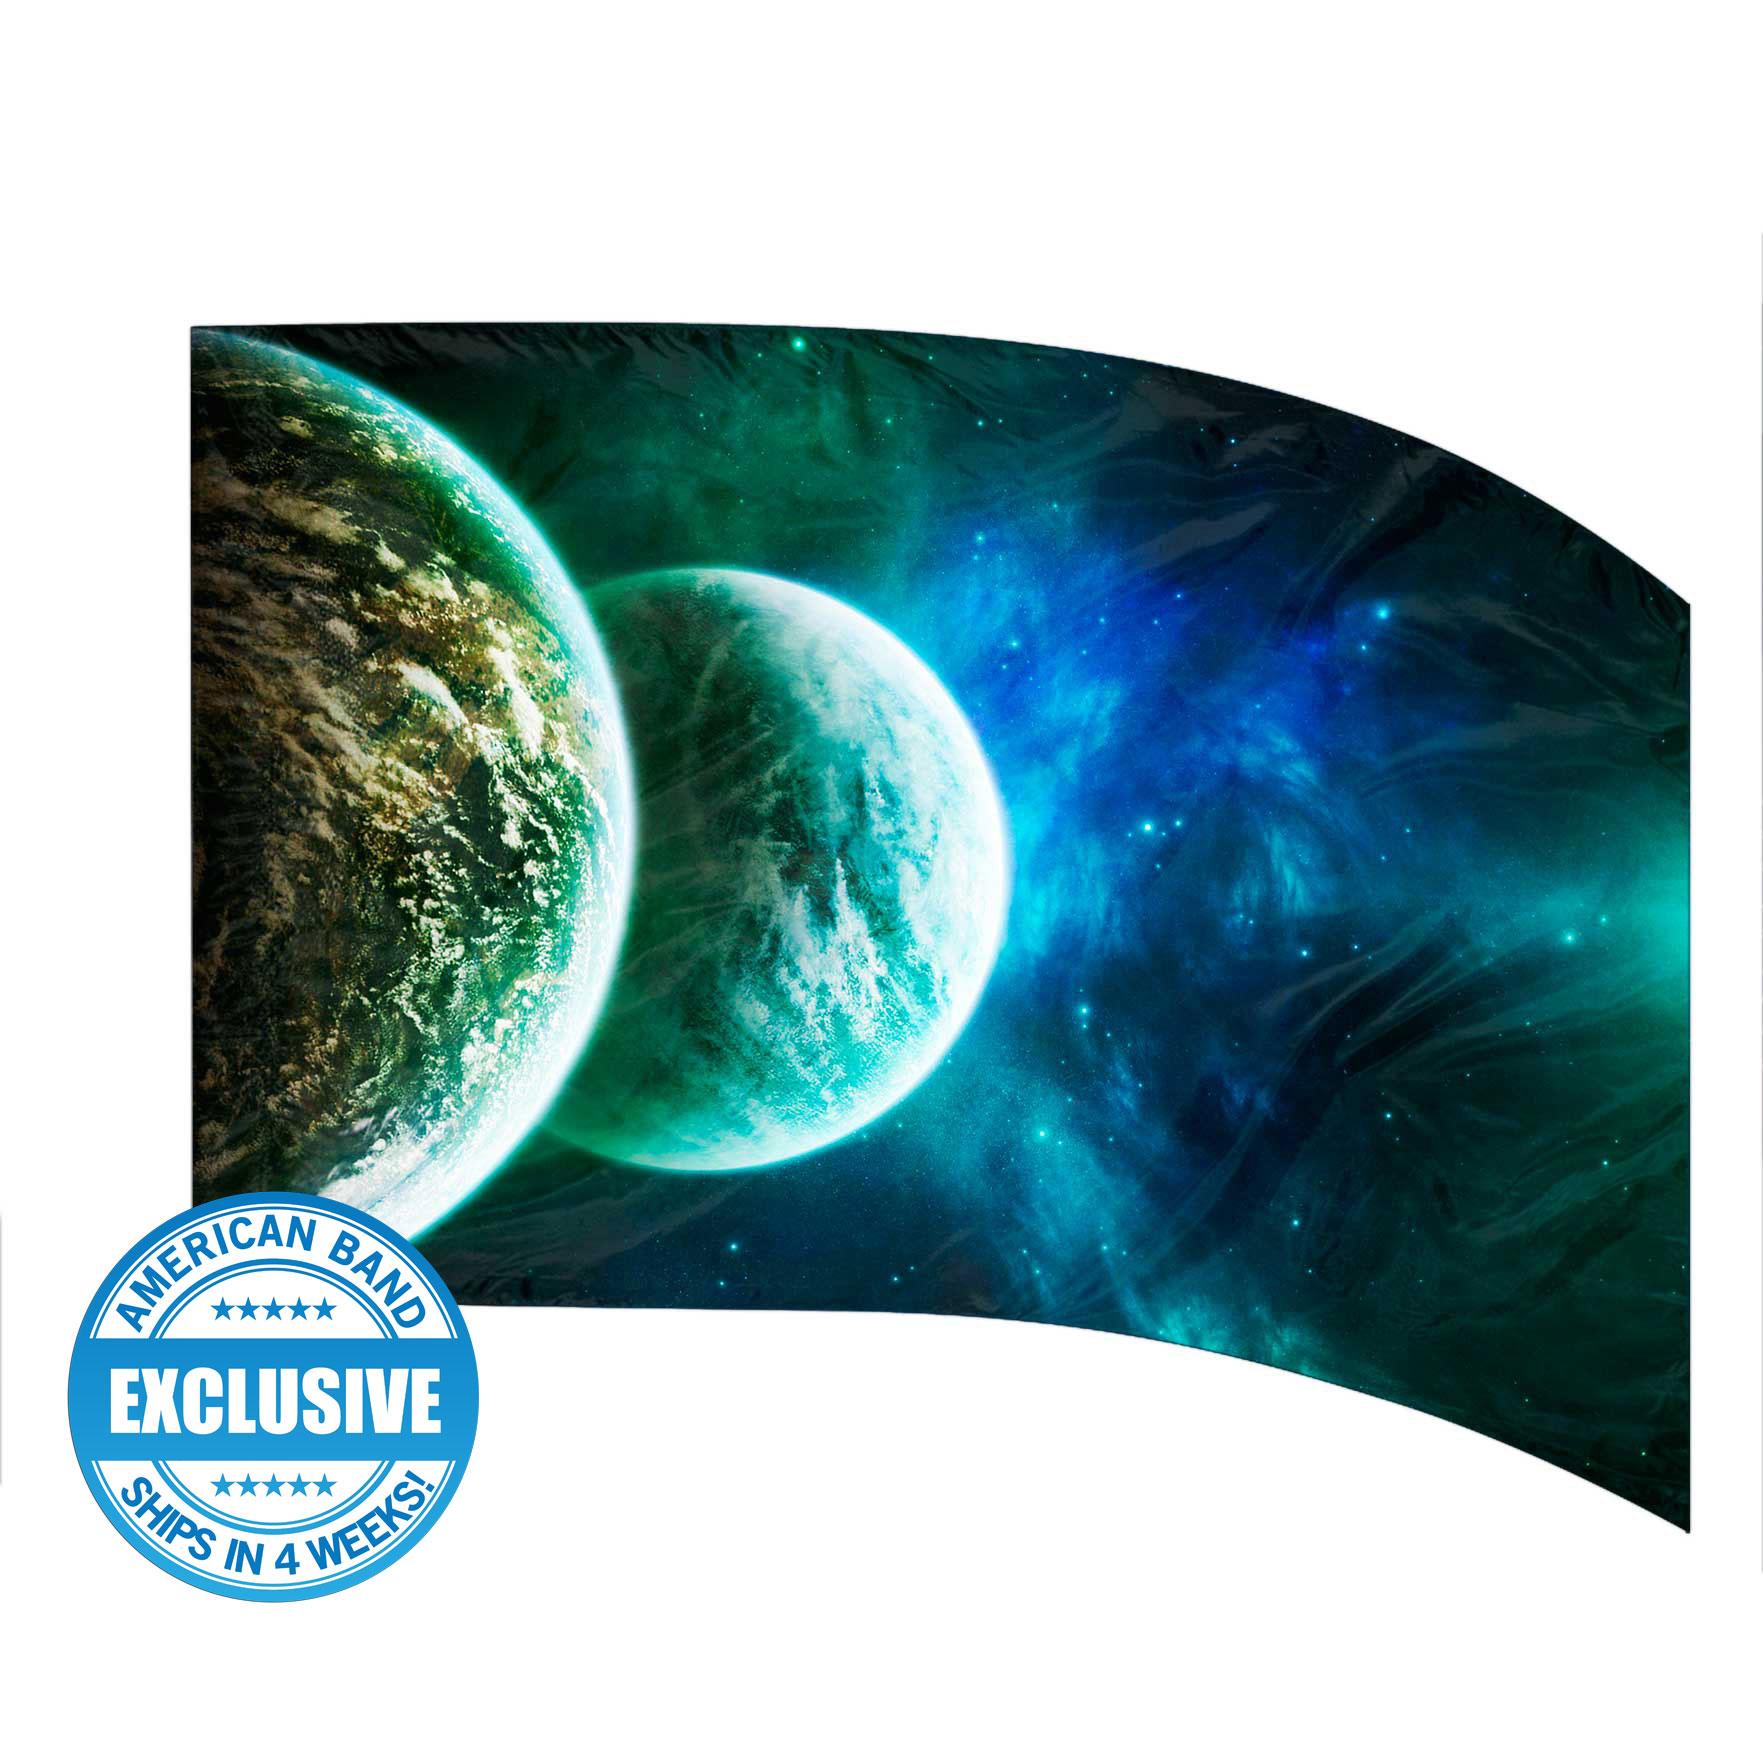 Made-to-Order Digital Cosmos Flags: Style 5